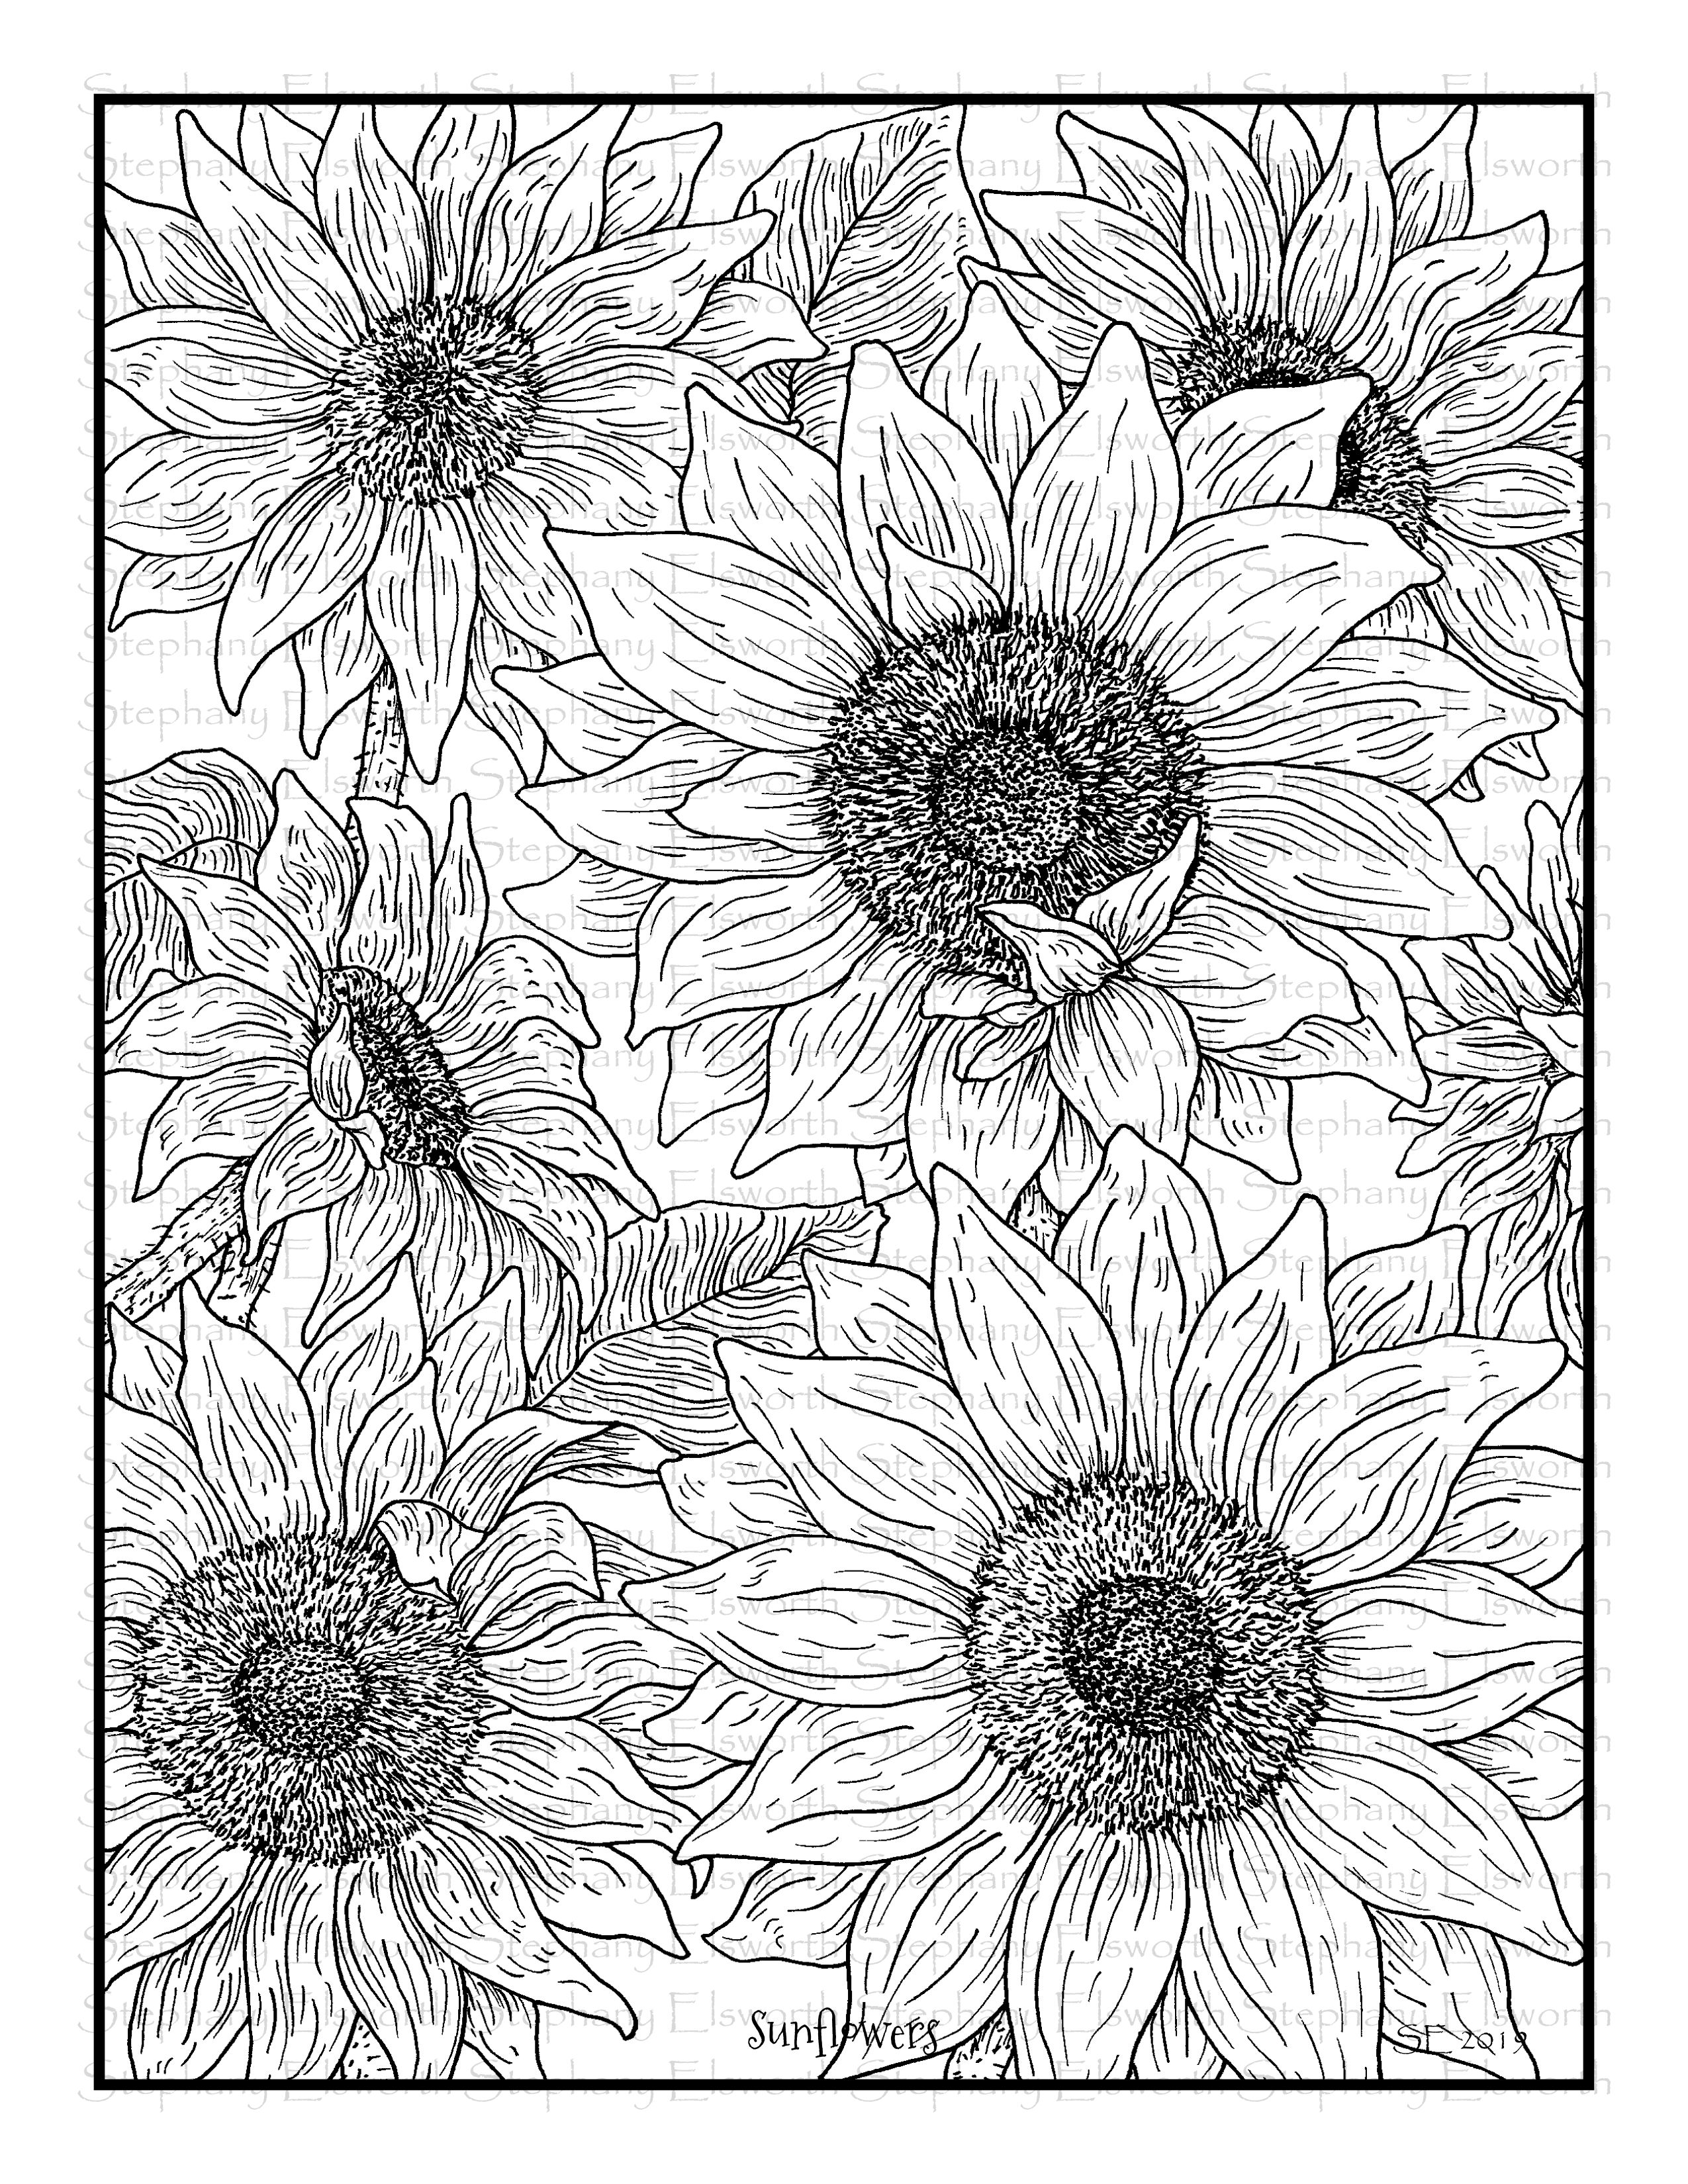 sunflower coloring sheets free printable sunflower coloring pages for kids sheets coloring sunflower